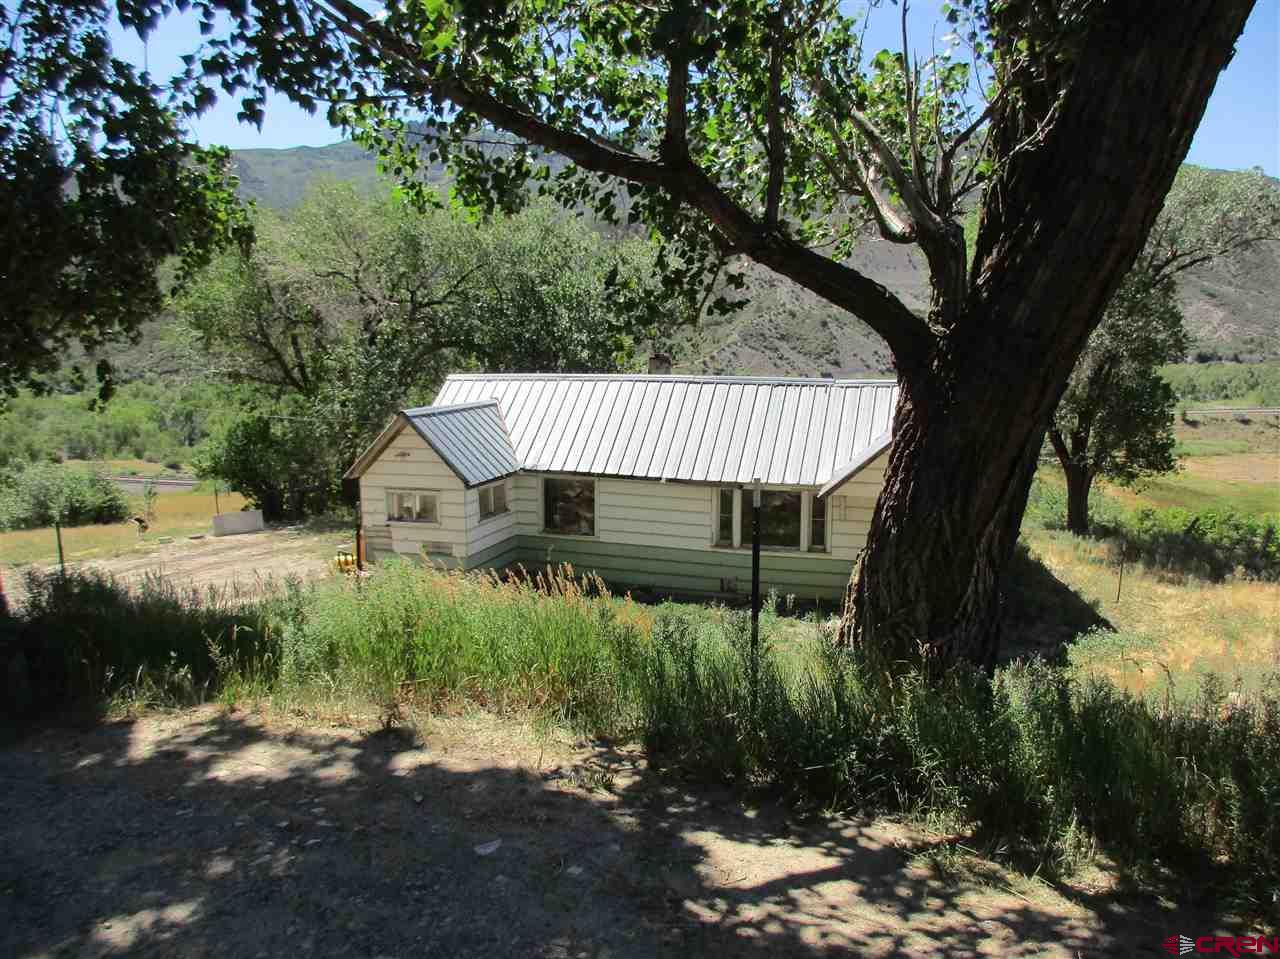 43222 Bowie Road, Paonia, Colorado 81428, 3 Bedrooms Bedrooms, ,1 BathroomBathrooms,Farm And Agriculture,For Sale,43222 Bowie Road,778883